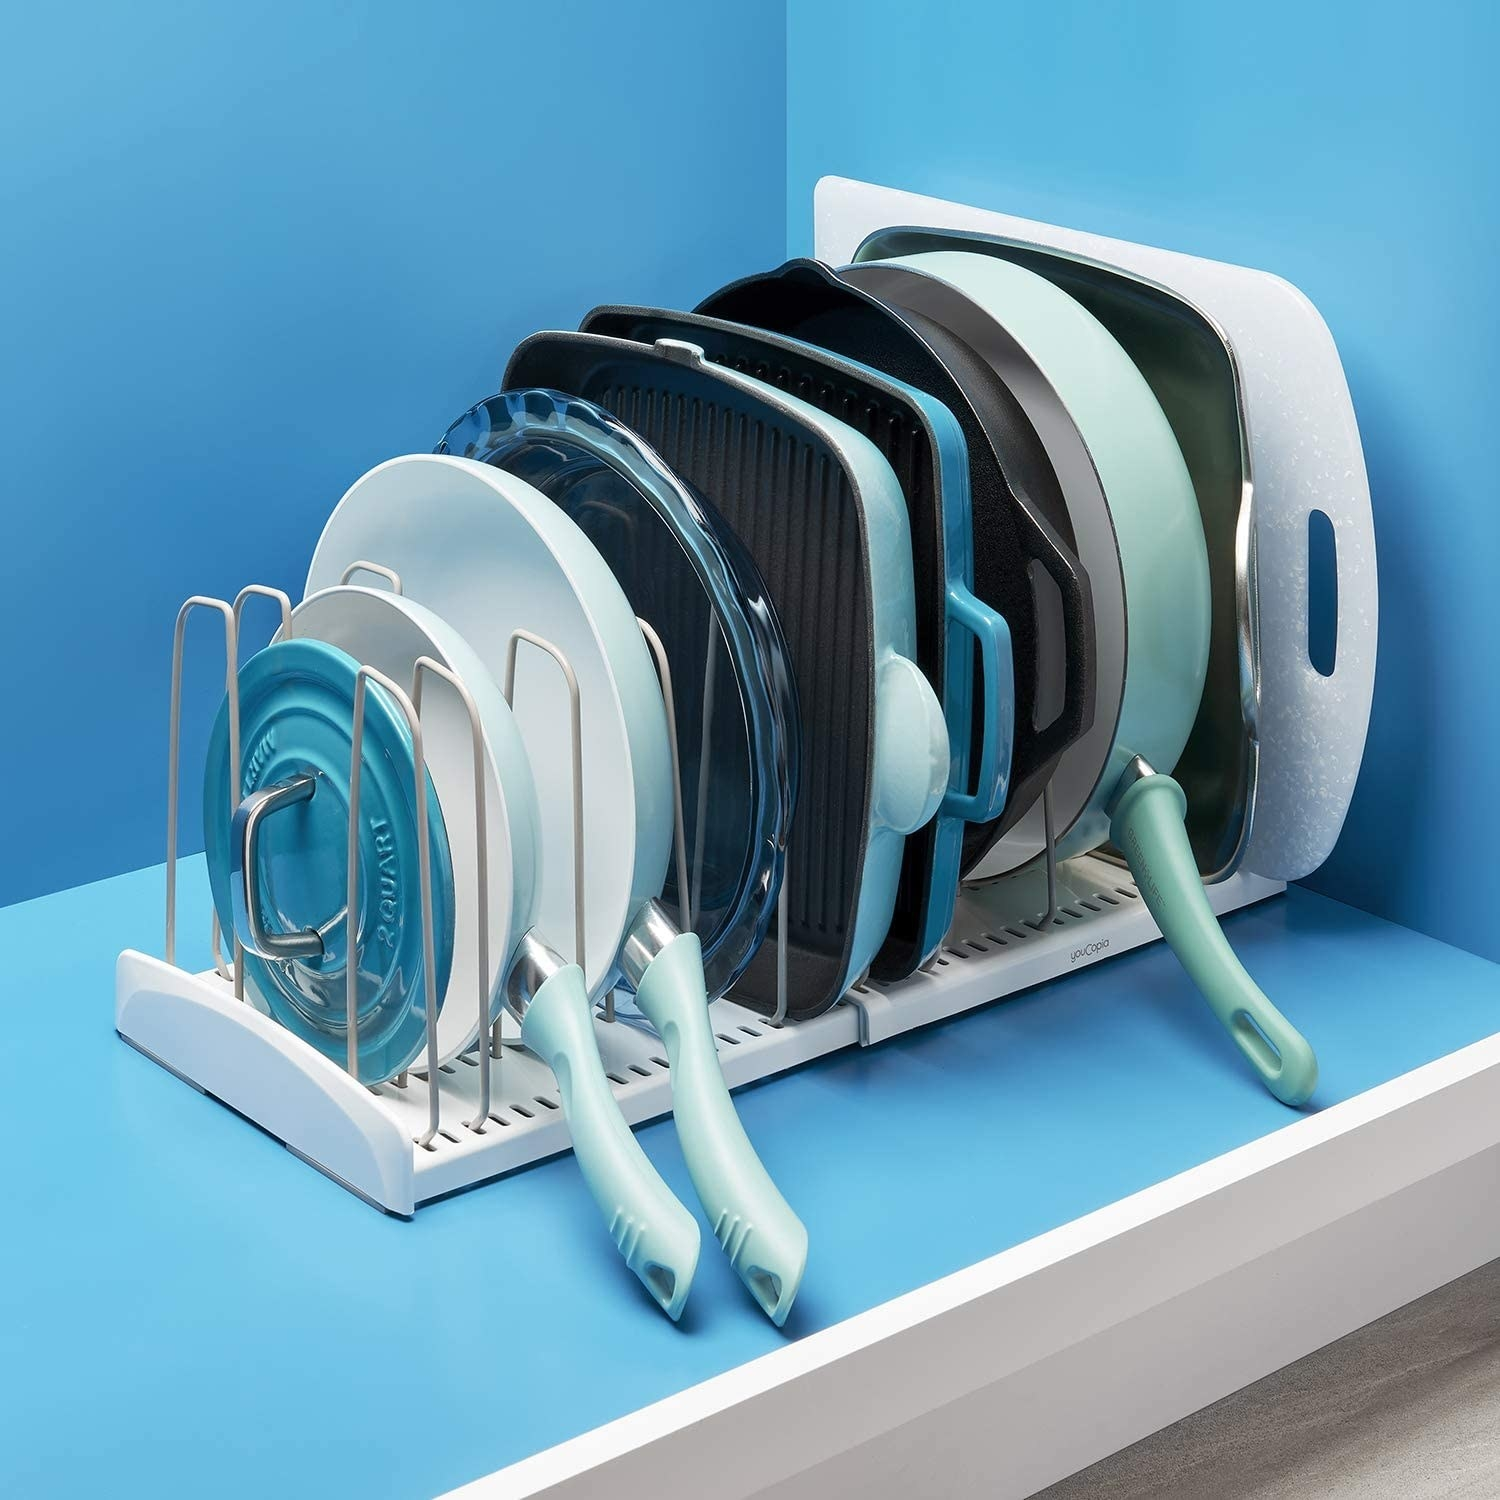 The expandable cookware organizer laden with tons of pots and pans